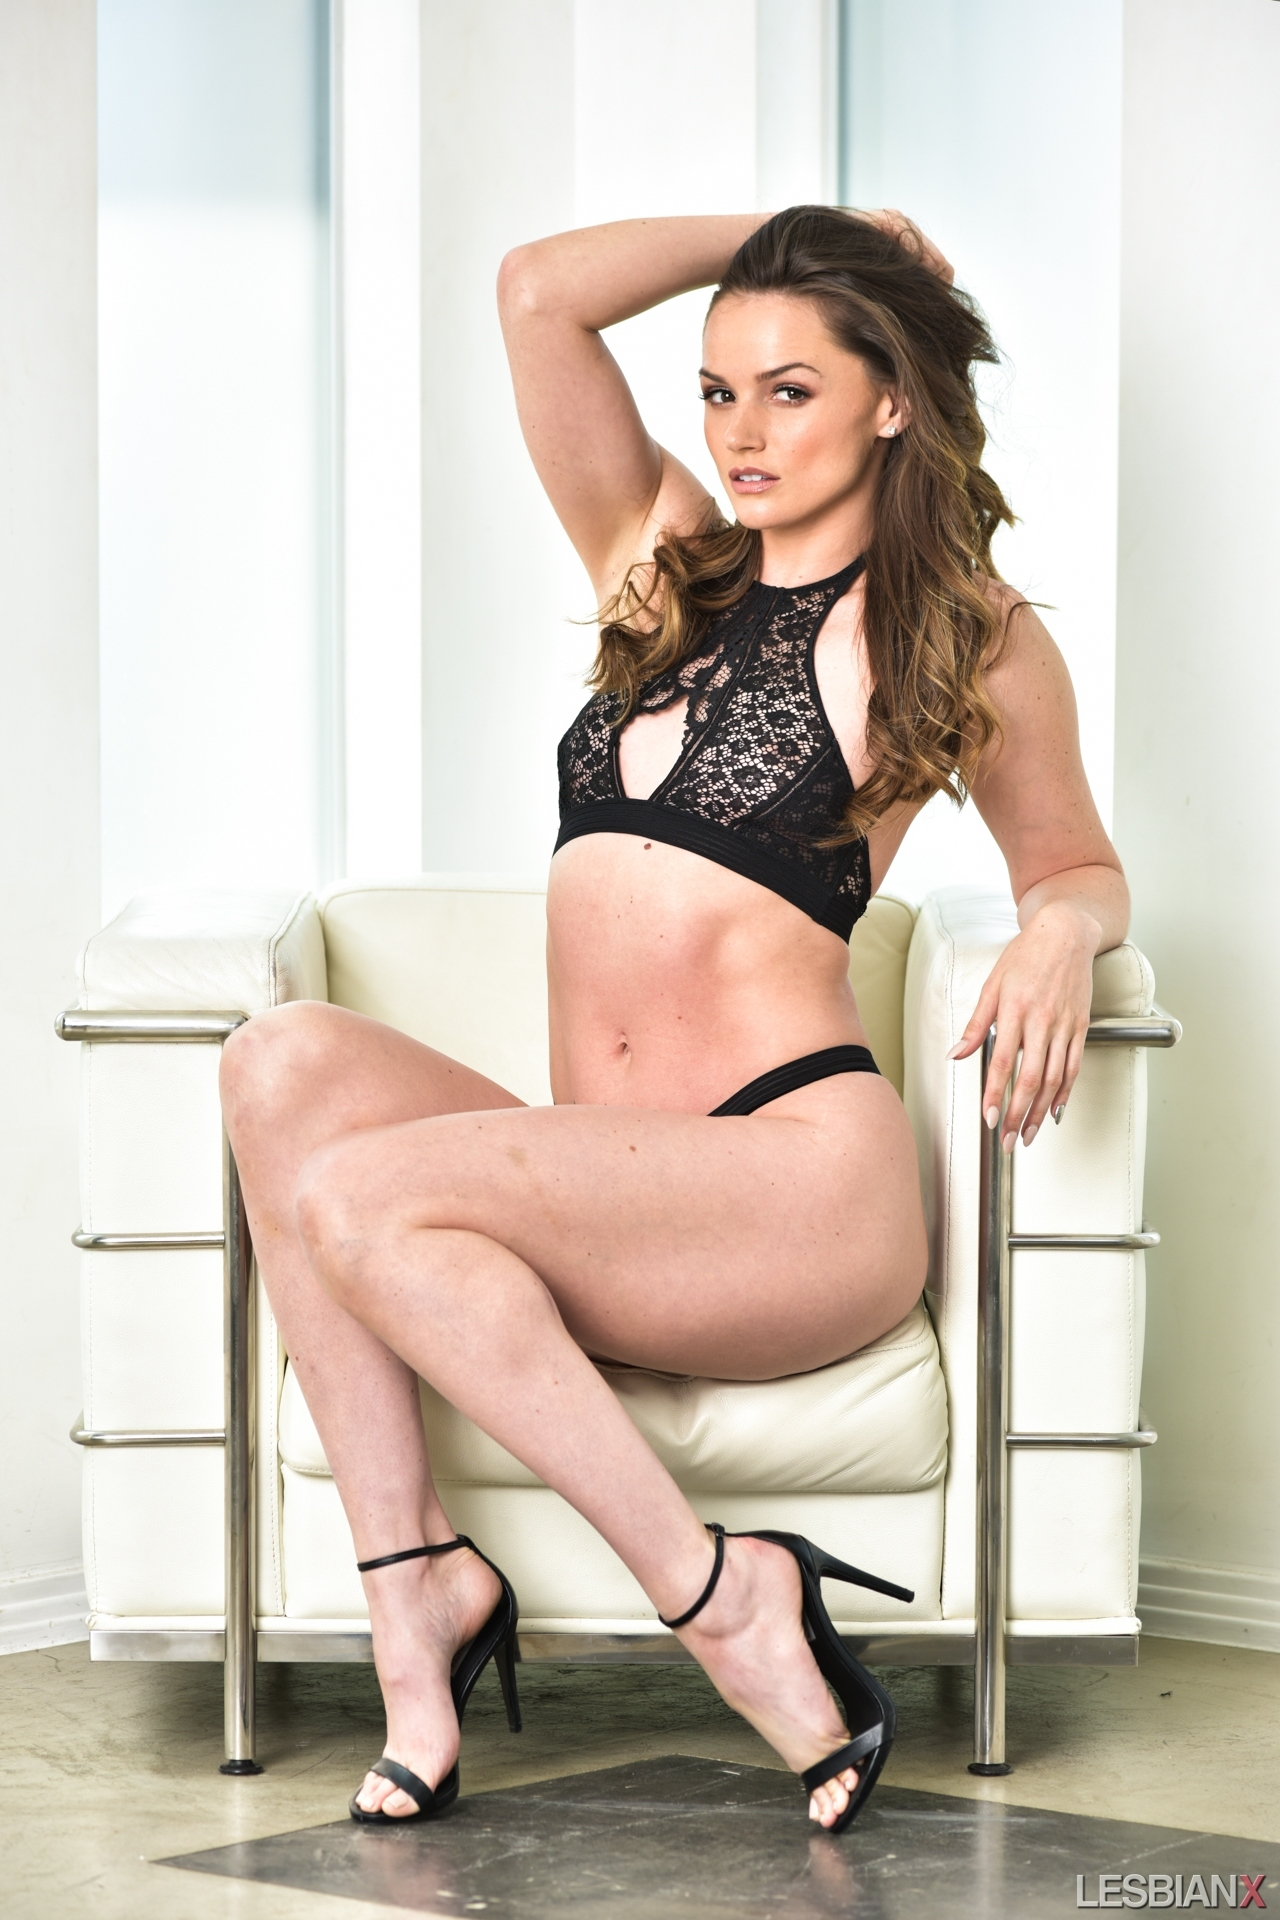 Tori black foot opinion you